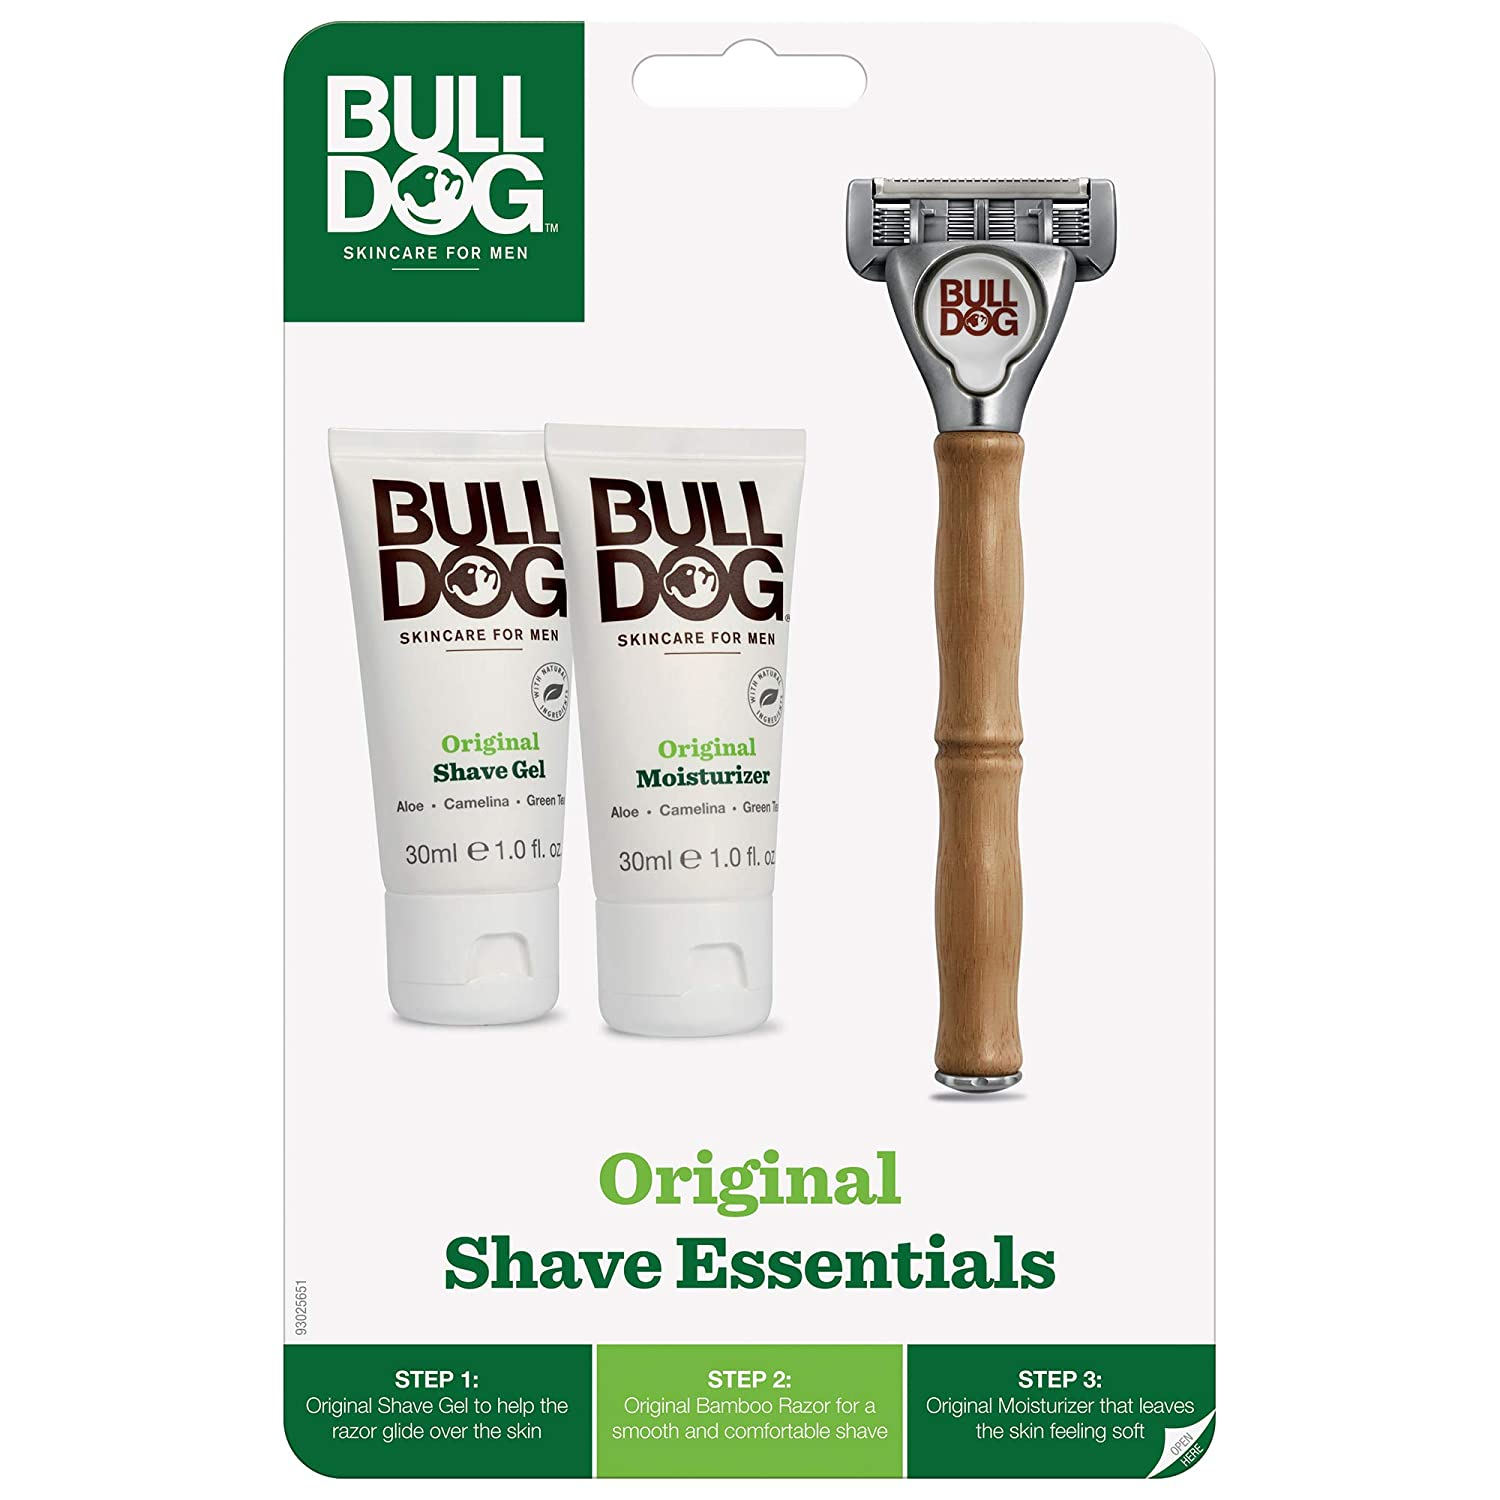 Bulldog Skincare and Grooming shaving set